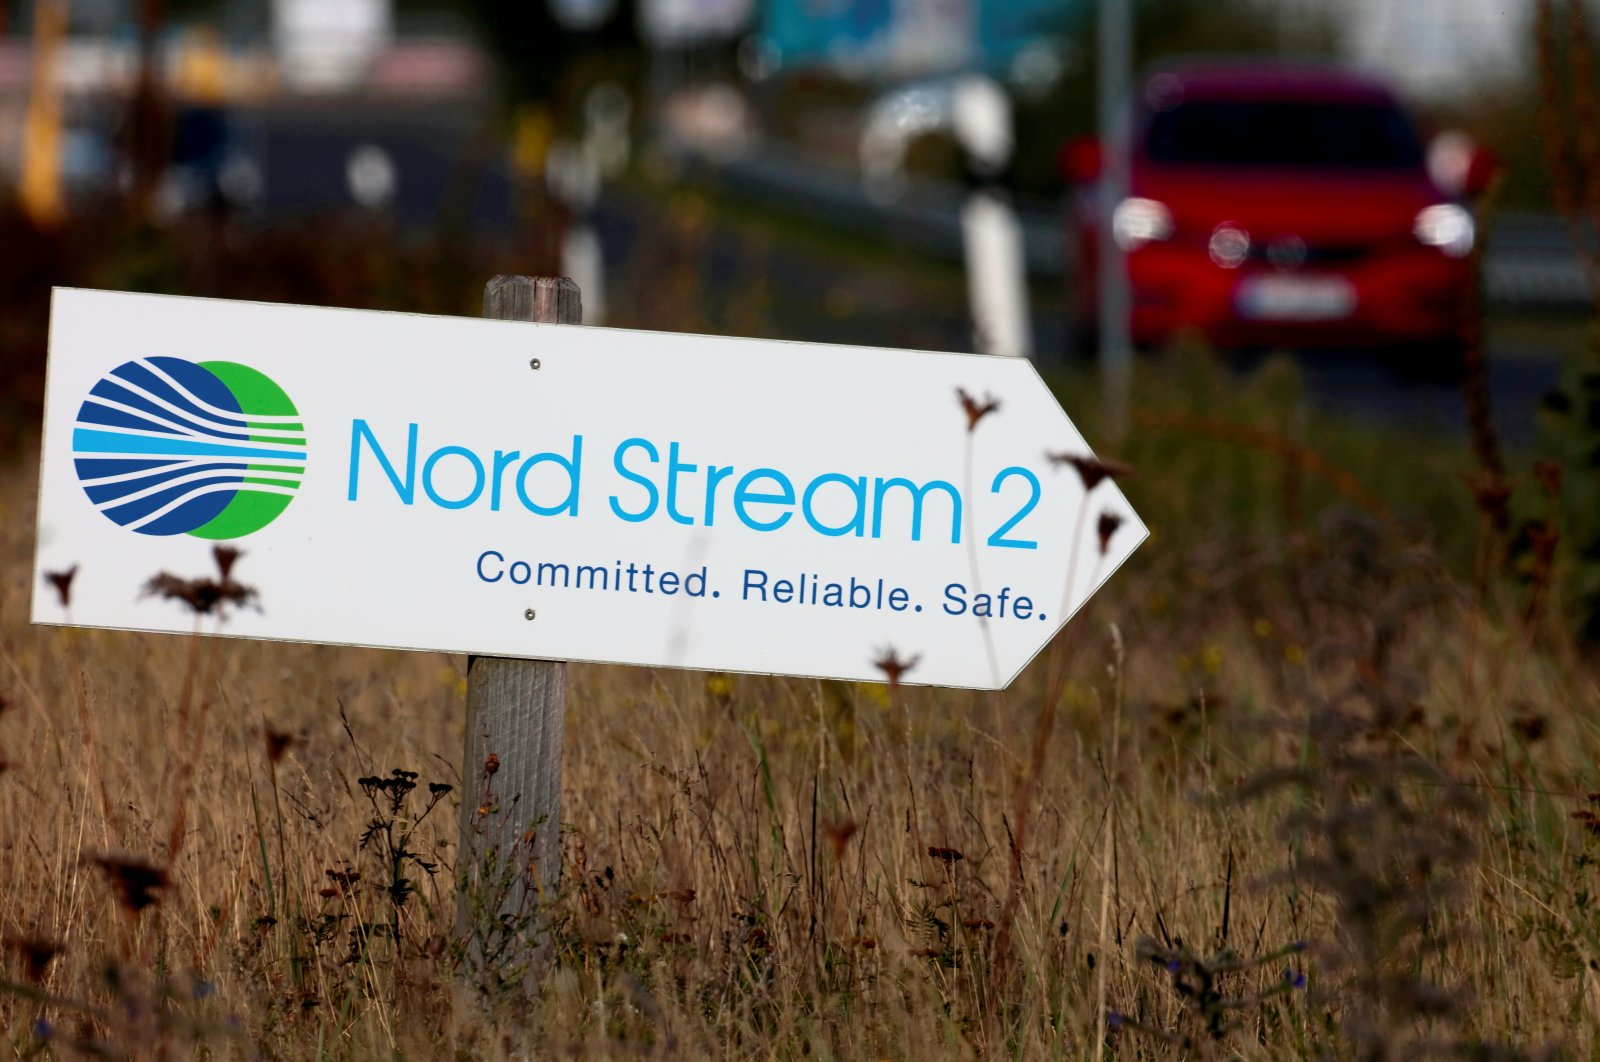 A road sign directs traffic towards the Nord Stream 2 gas line landfall facility entrance in Lubmin, Germany, Sept. 10, 2020. (Reuters Photo)